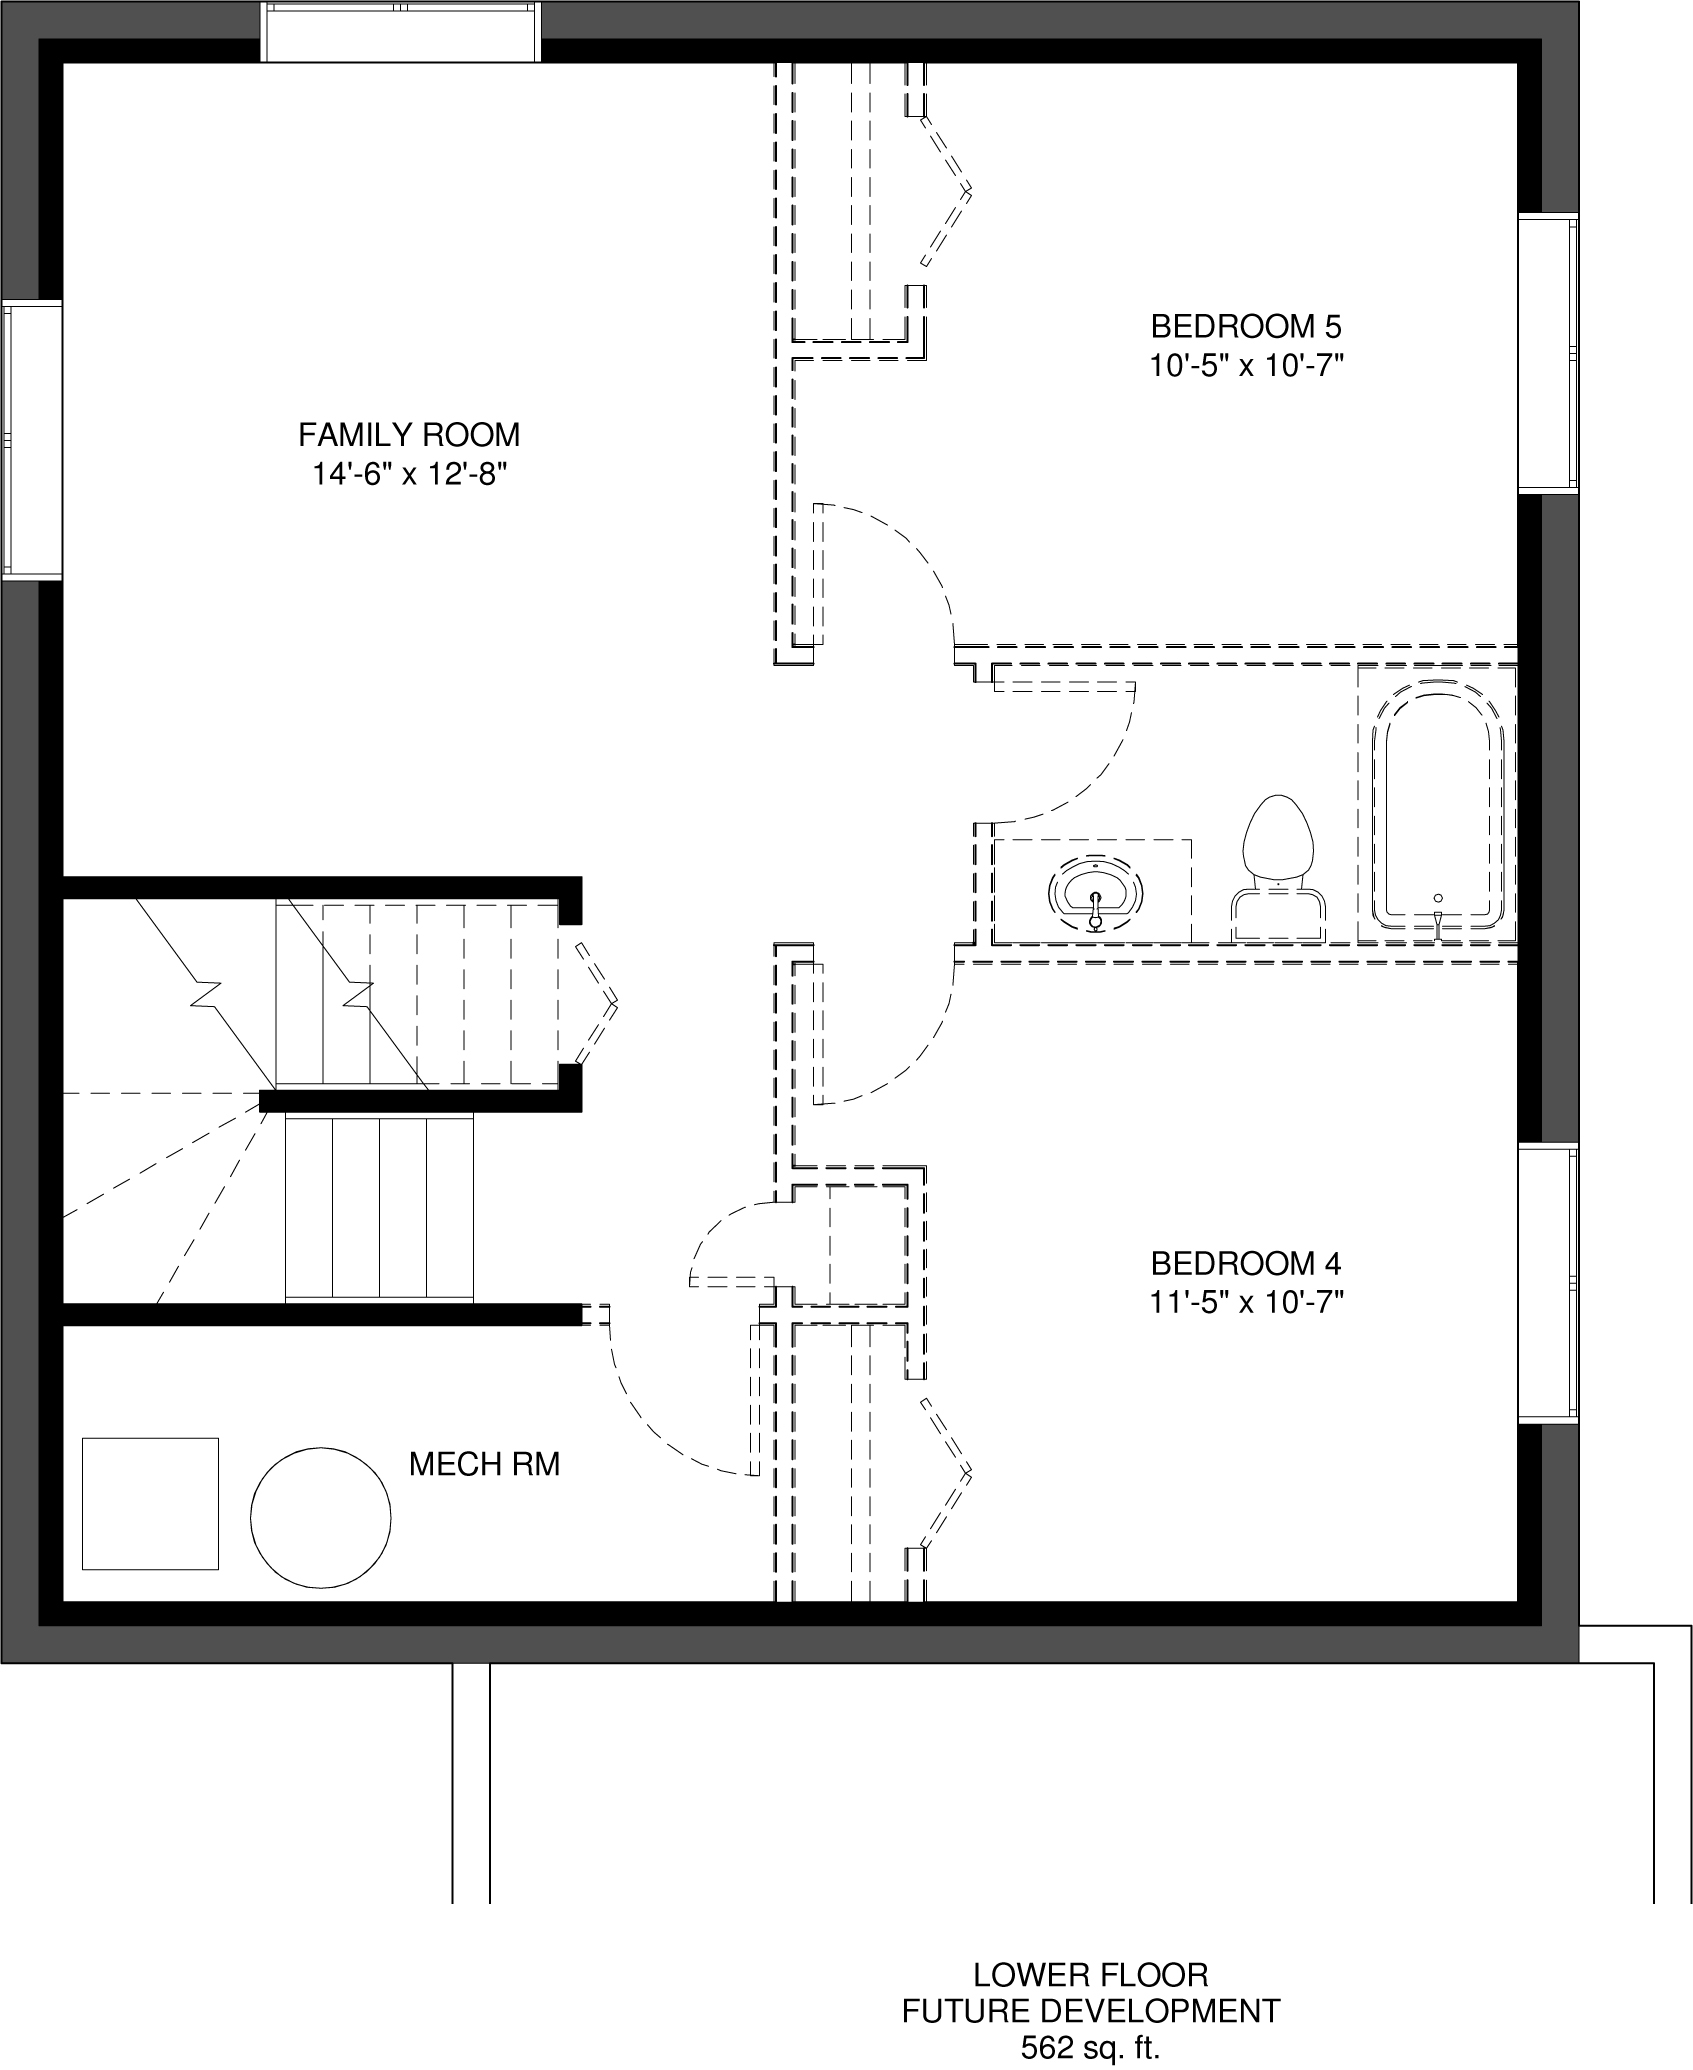 Lower Floor Future Development   562 sq ft